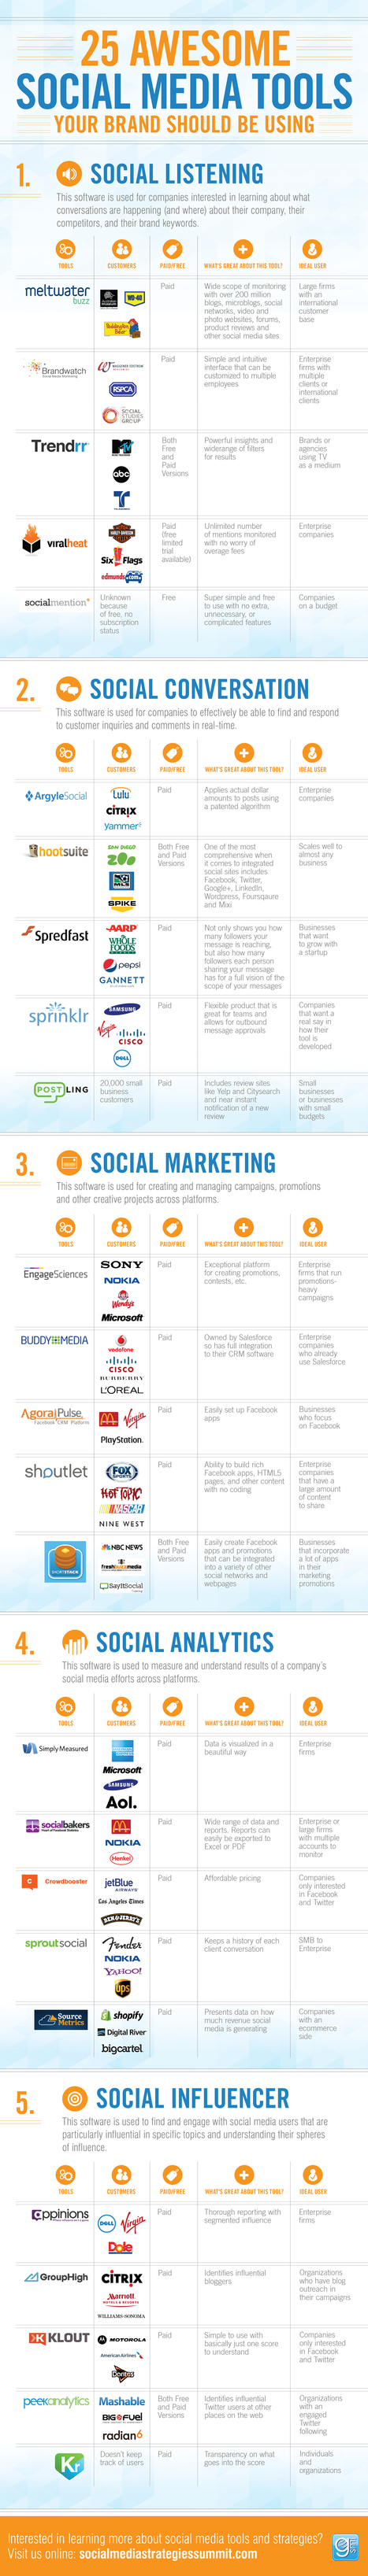 Infographic: 25 Awesome Social Media Tools - Marketing Technology Blog | Digital Marketing Fever | Scoop.it